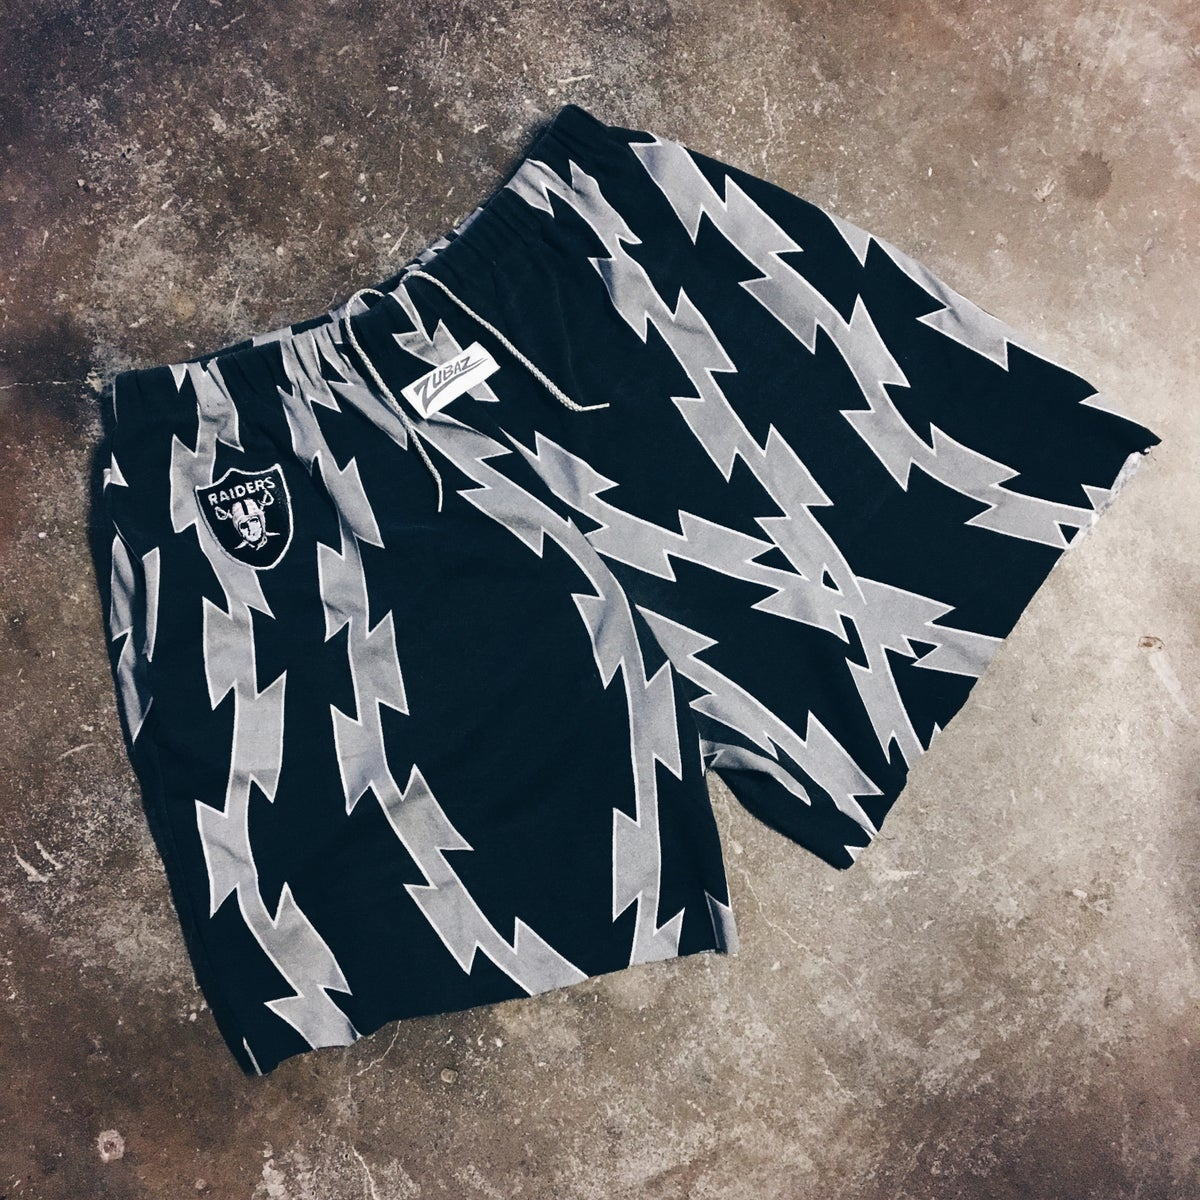 Image of Original 90's Zubaz Raiders Cutoff Shorts.